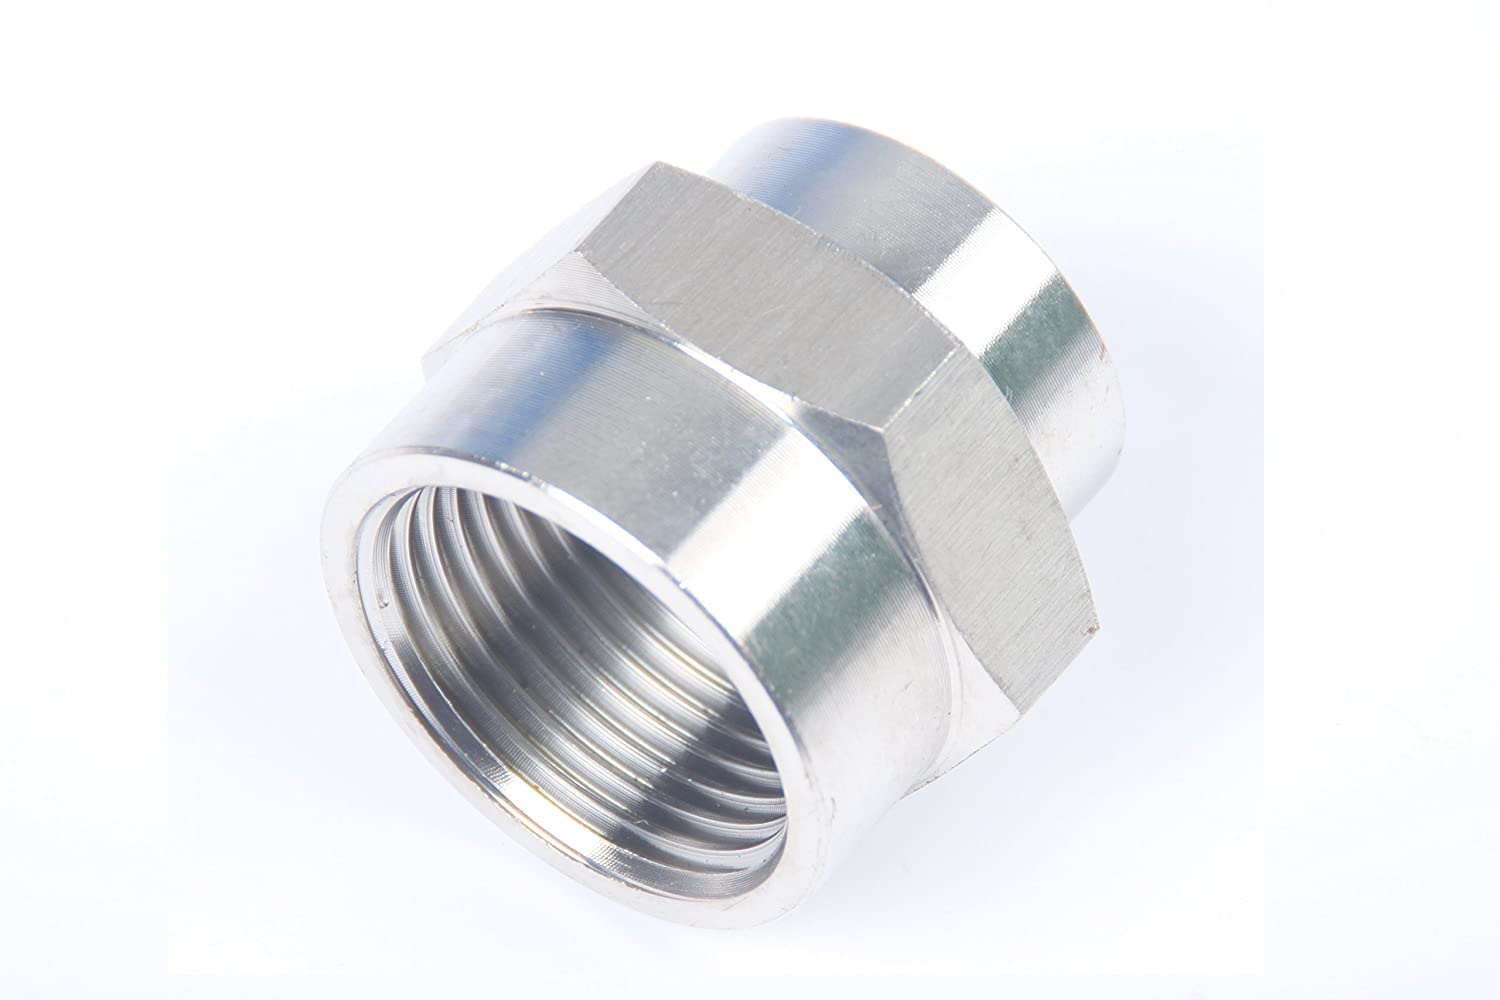 Pack of 25 LTWFITTING Bar Production Stainless Steel 316 Pipe Fitting 1//2 x 1//4 Female NPT Reducing Coupling Water Boat